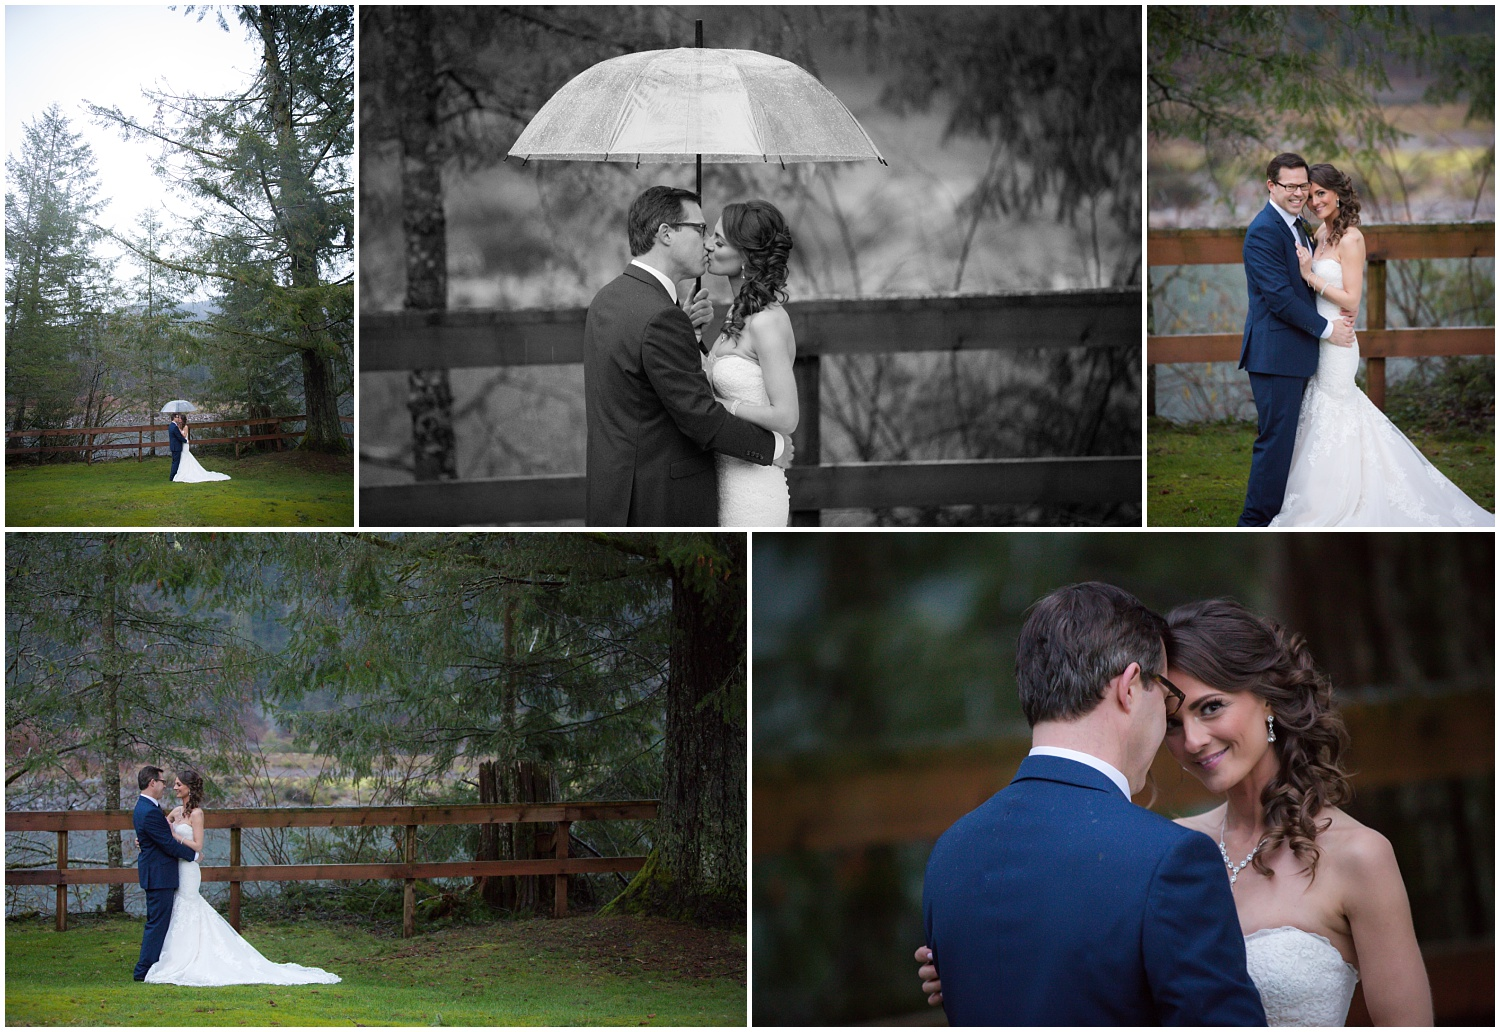 Amazing Day Photography - Mission Wedding Photographer - Eighteen Pastures Wedding - Hayward Lake Wedding - Spring Wedding (12).jpg